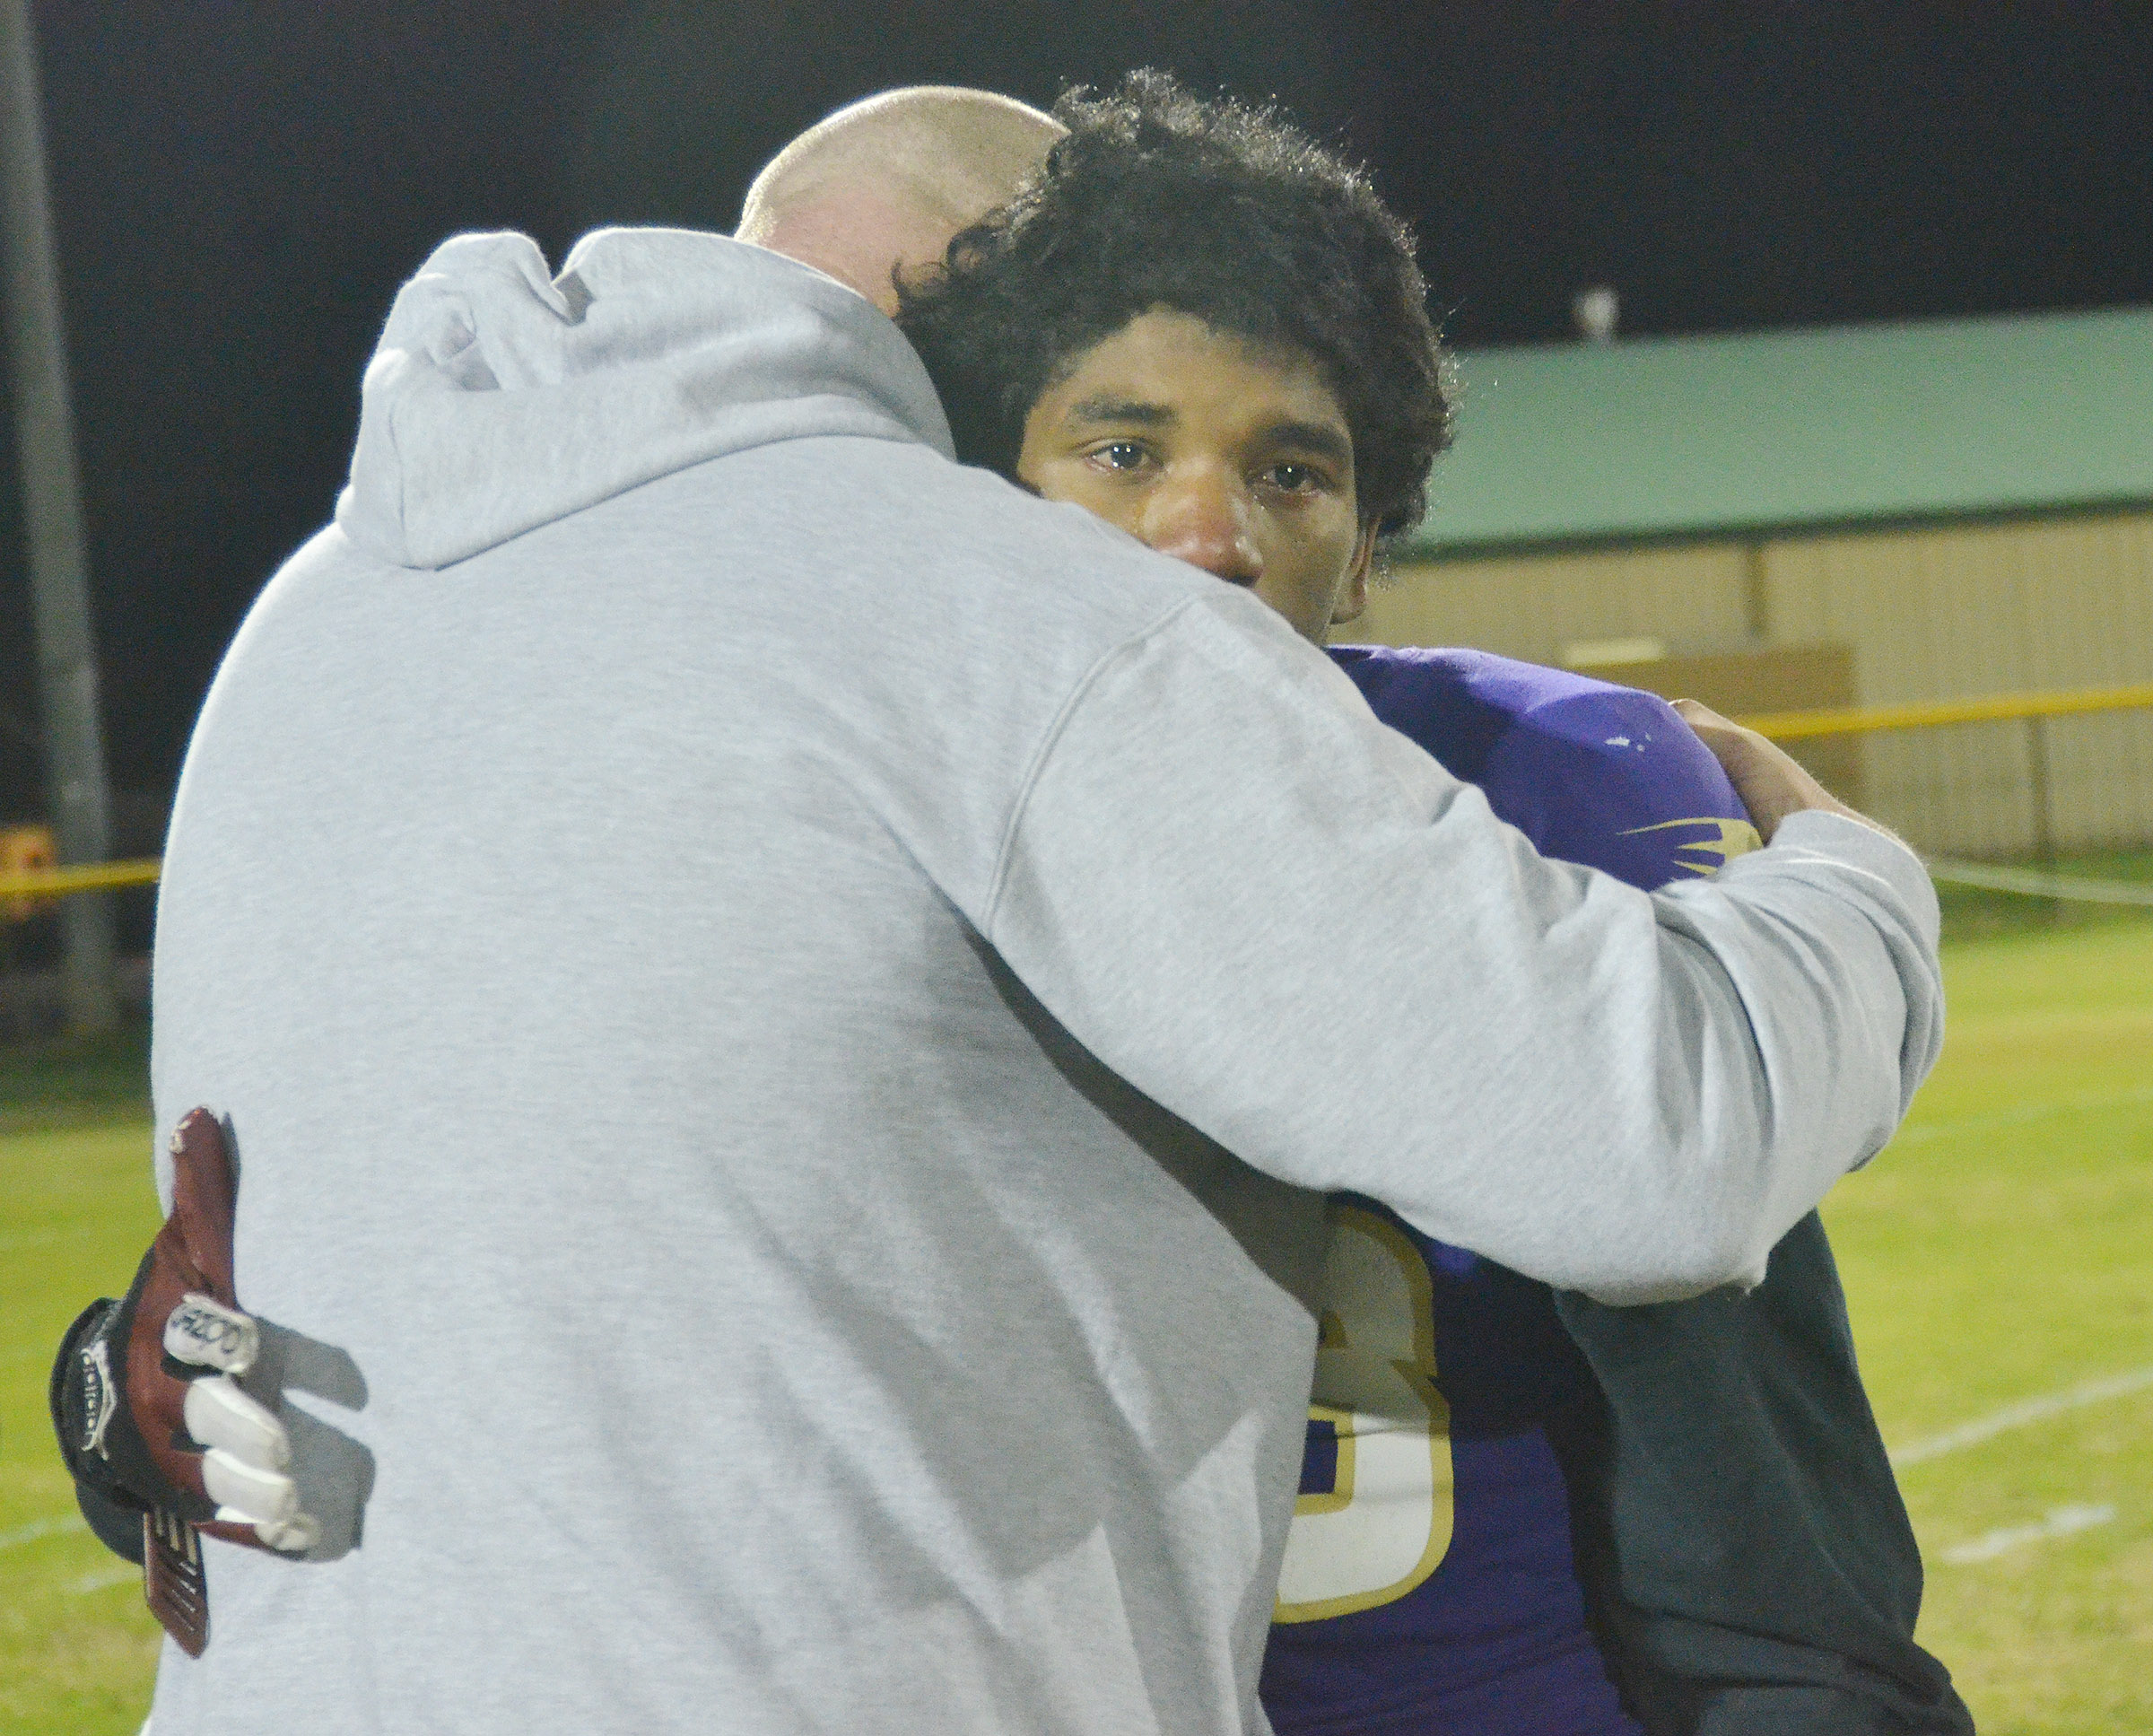 CHS Principal David Petett hugs senior Tyrion Taylor after the game.